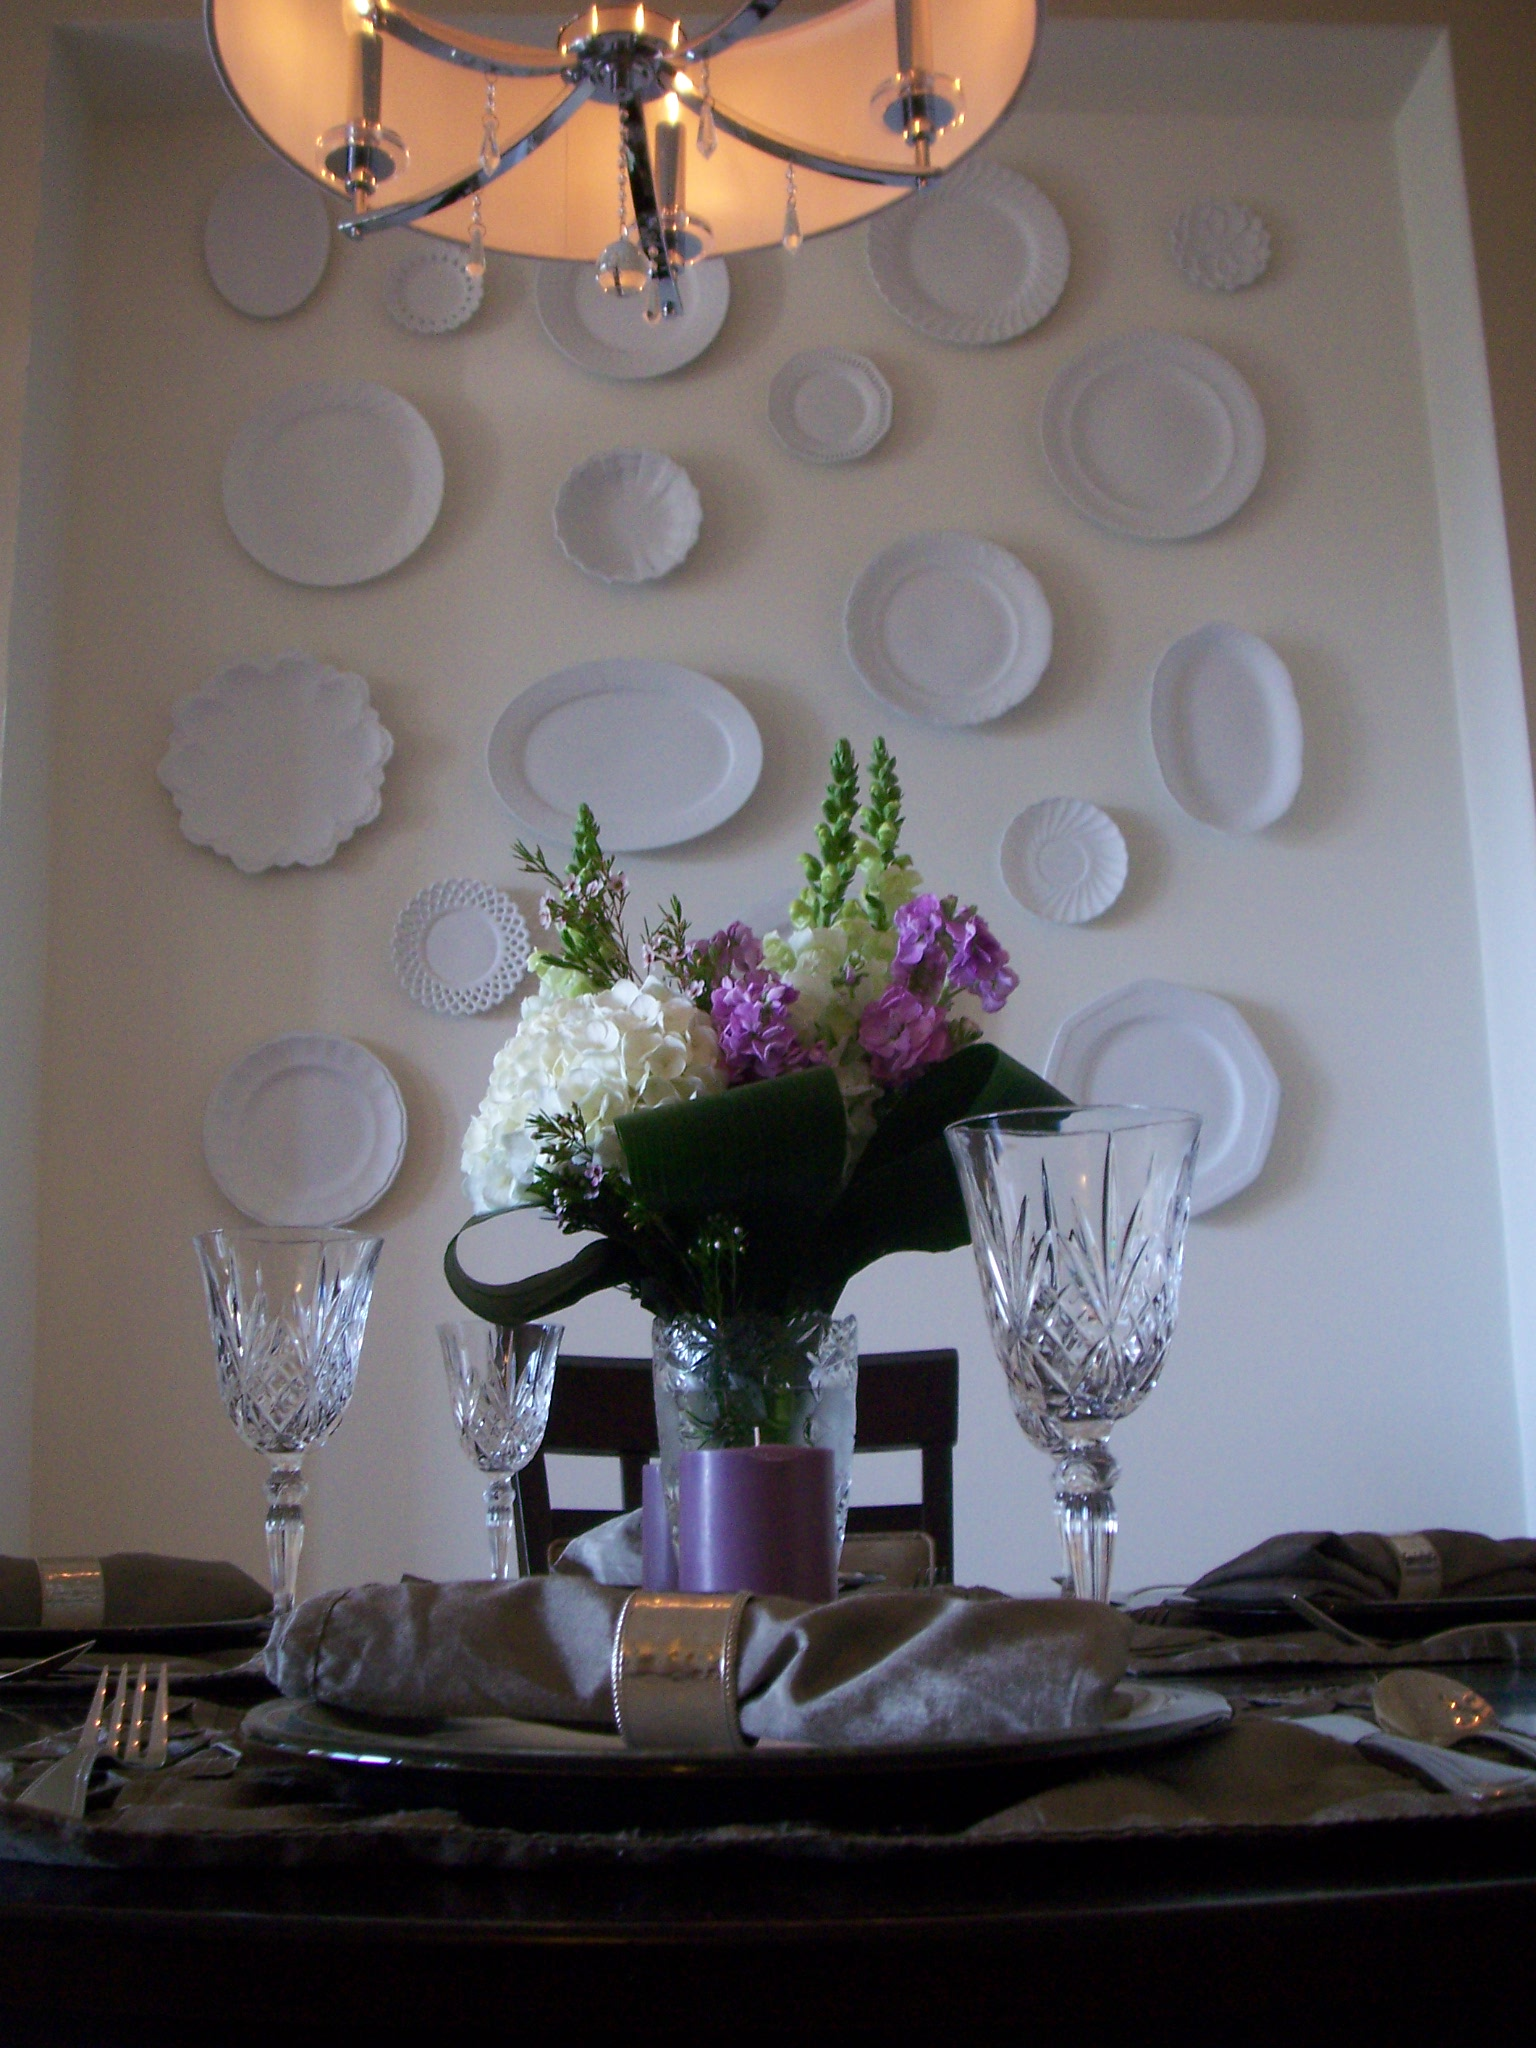 Having the plates go so far up the wall really visually increases the height of the ceilings in the dining area and makes it feel special.